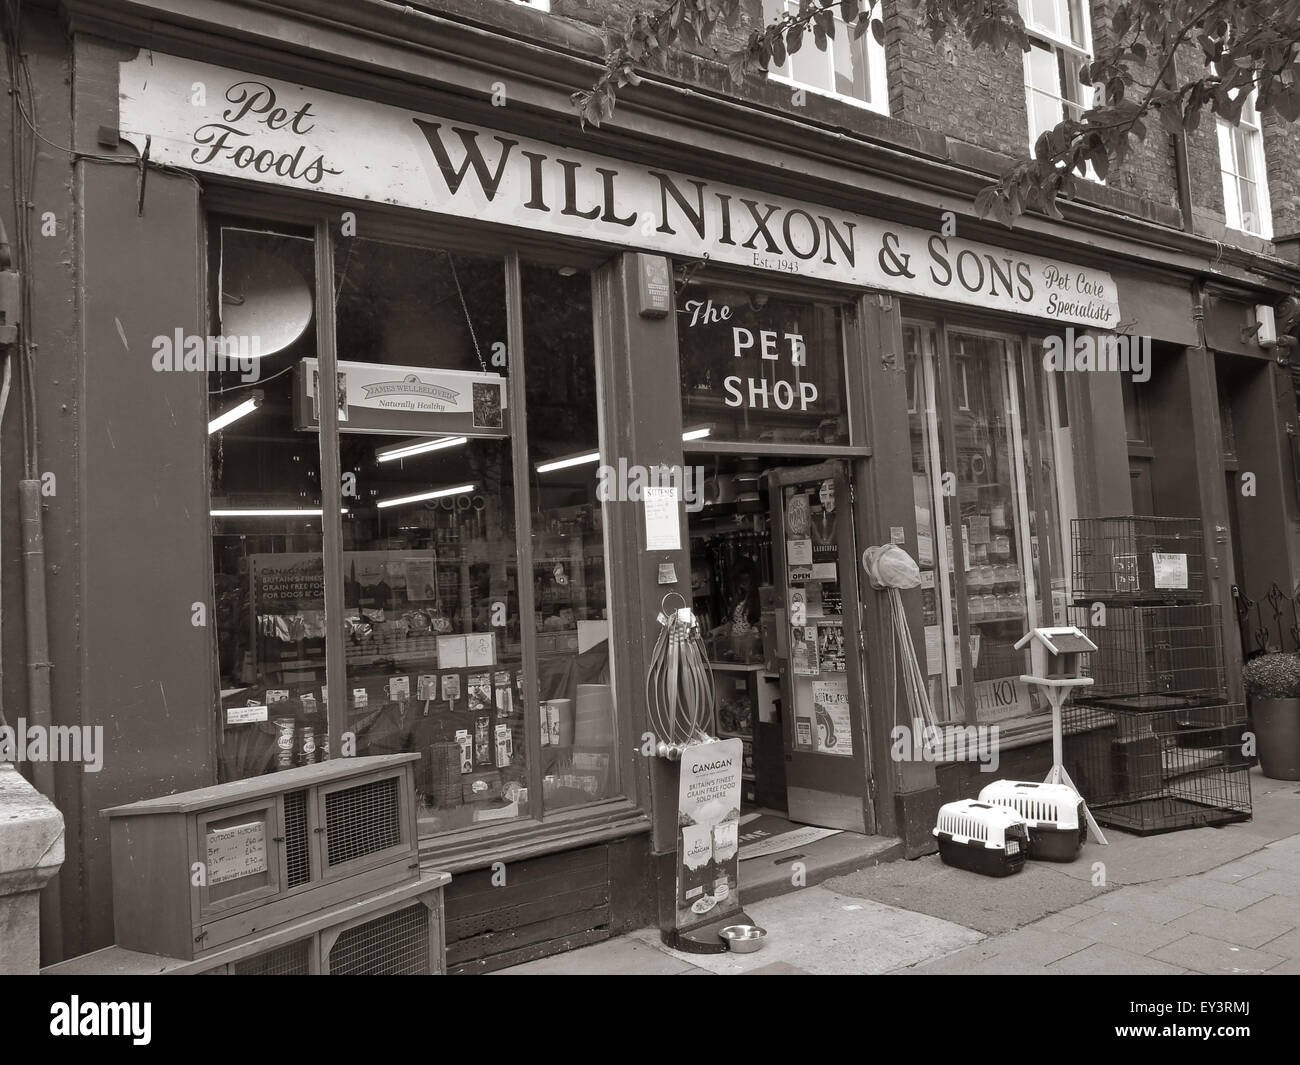 Will Nixon and sons,traditional Carlisle pet shop,Cumbria,England,UK in monochrome - Stock Image